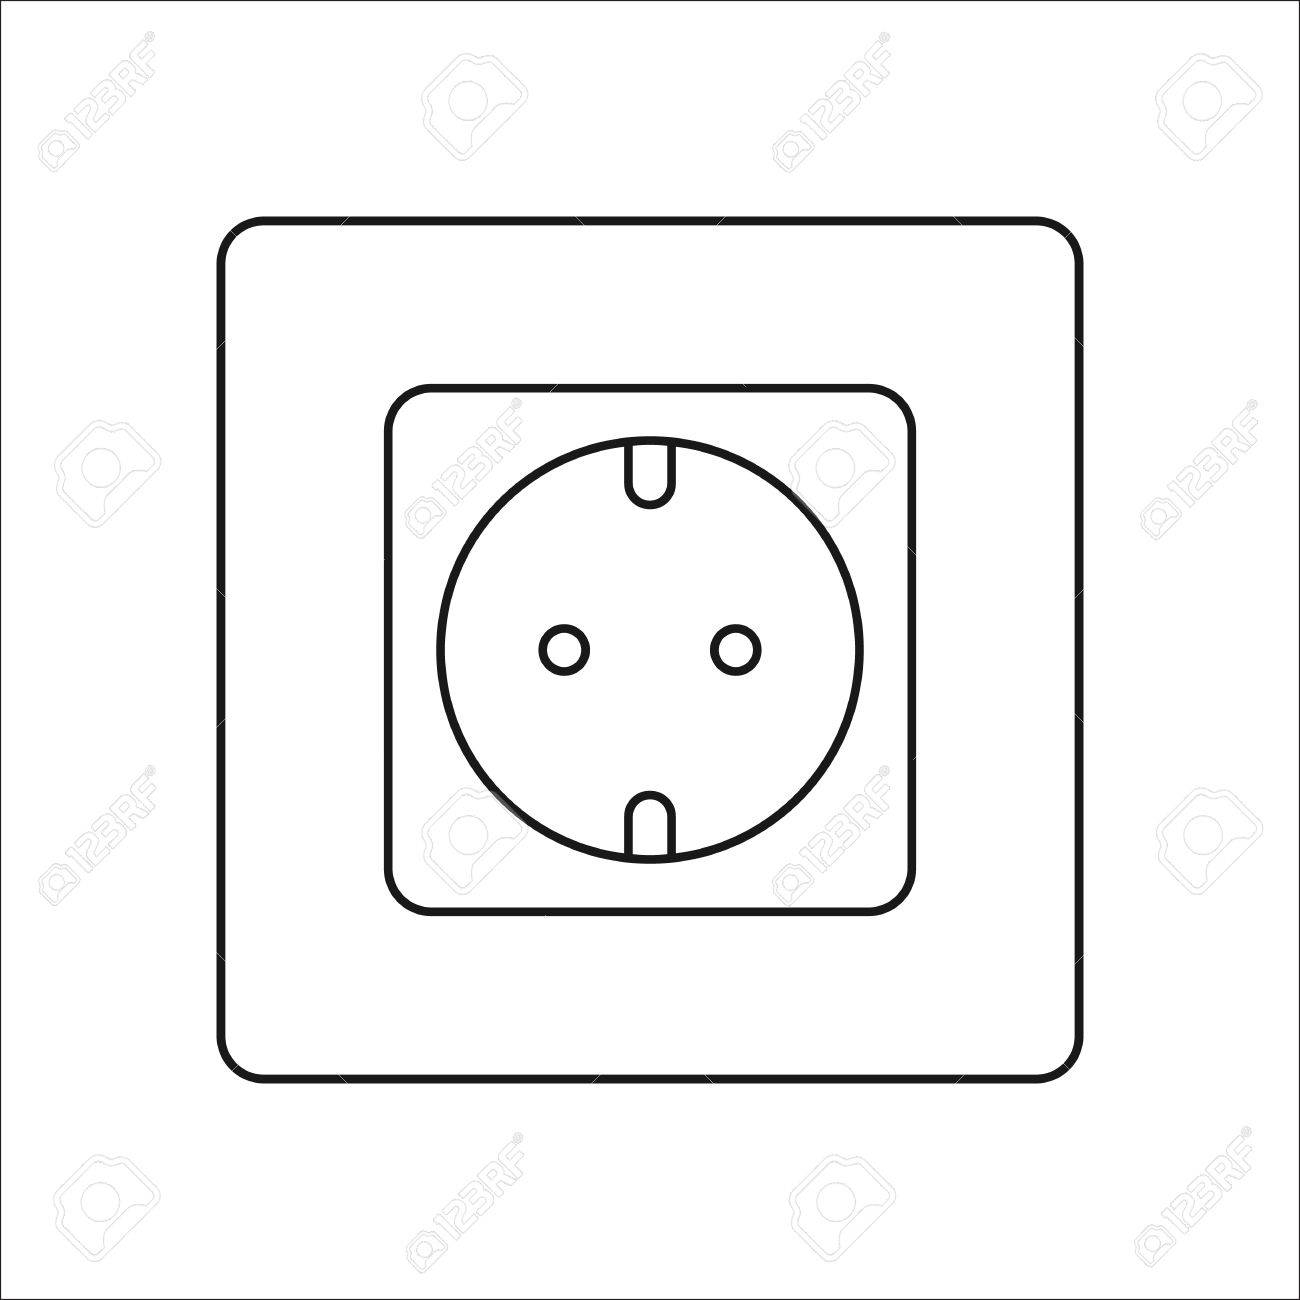 69780517 Power socket symbol sign line icon on background Stock Vector rheostat symbol dolgular com rheostat wiring diagram at gsmx.co